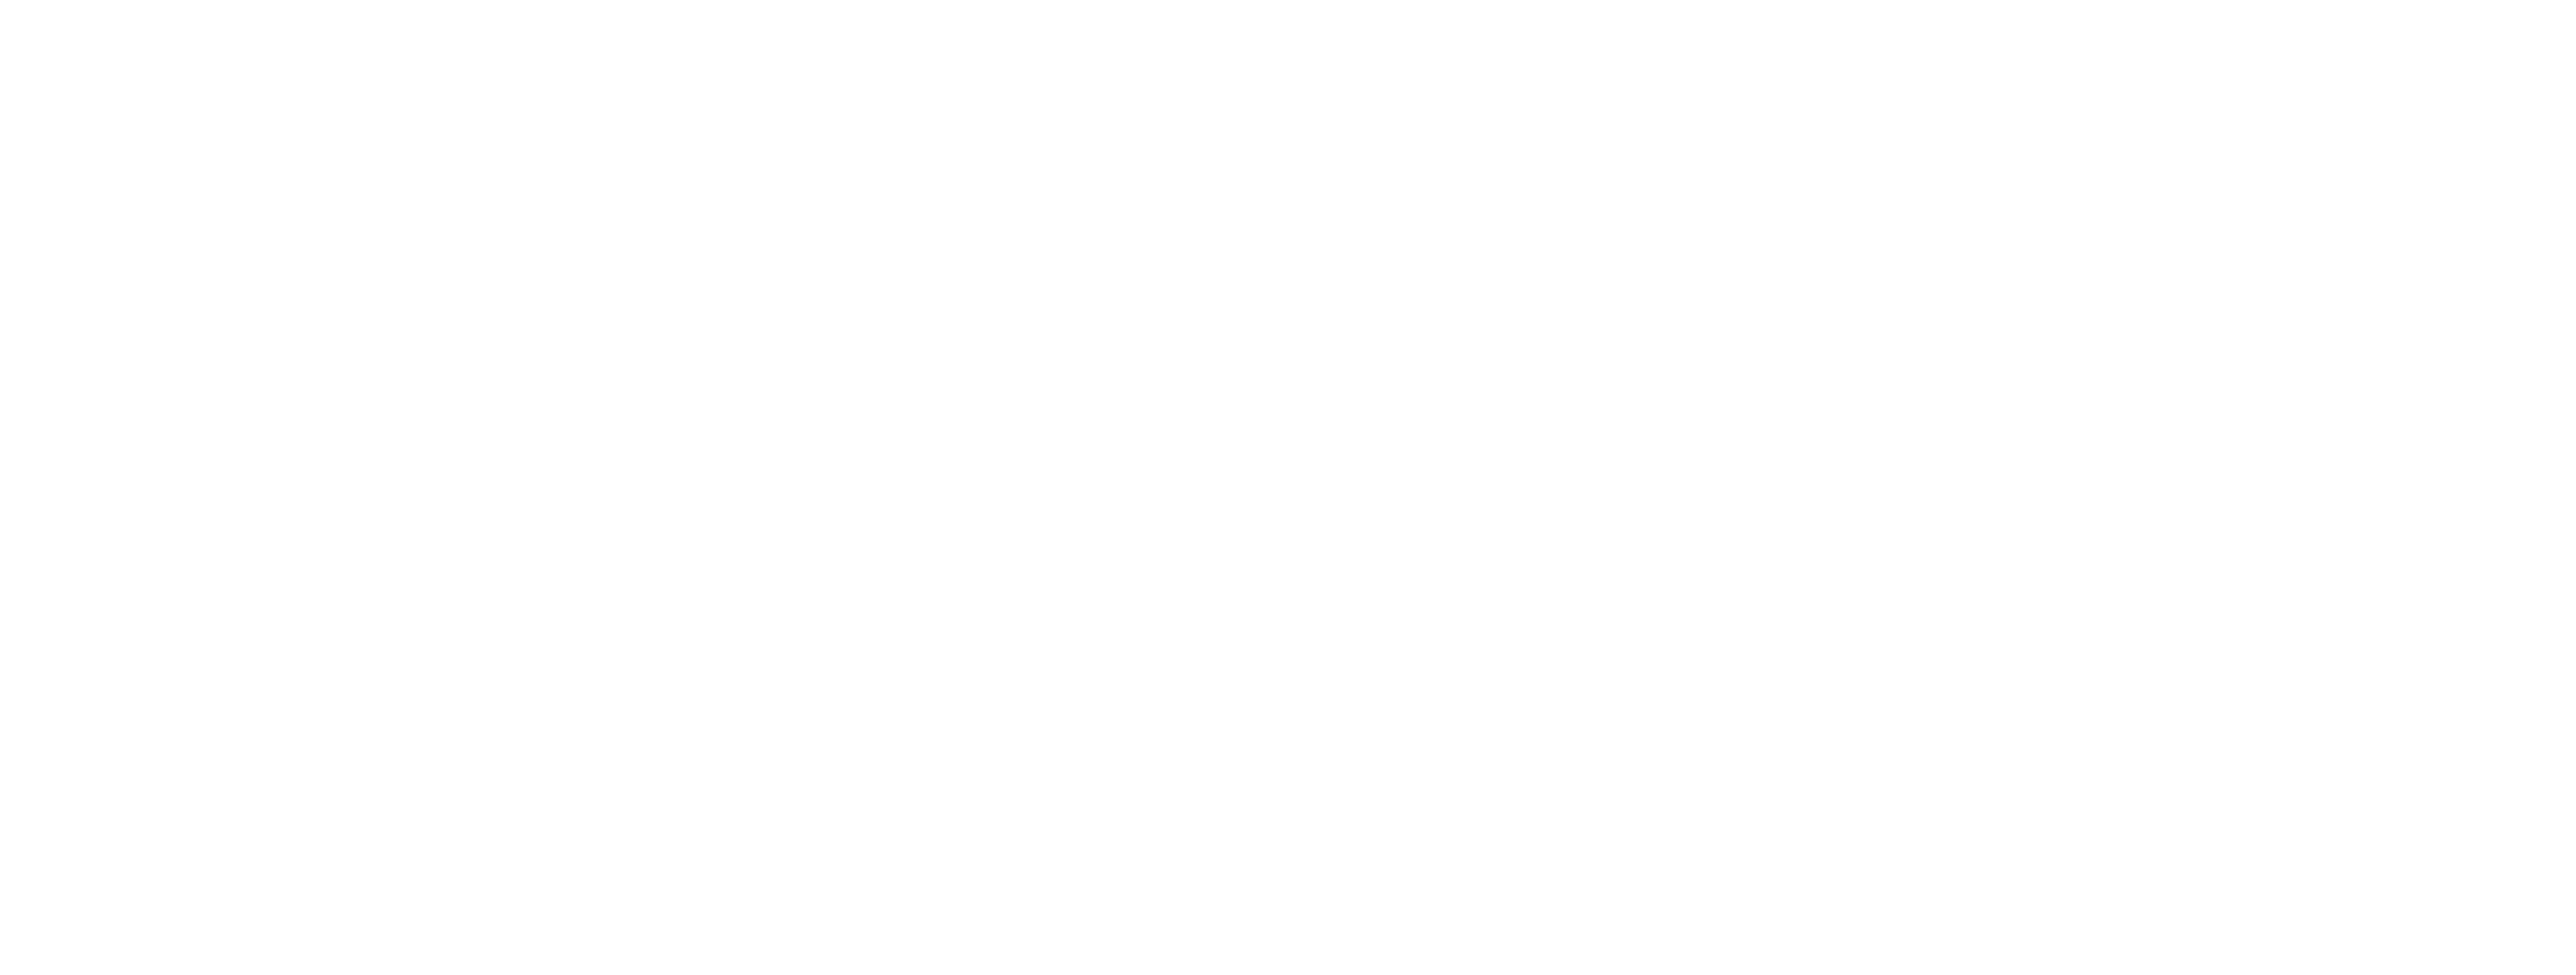 ISO 27001 & 9001 of Indonesian Cloud